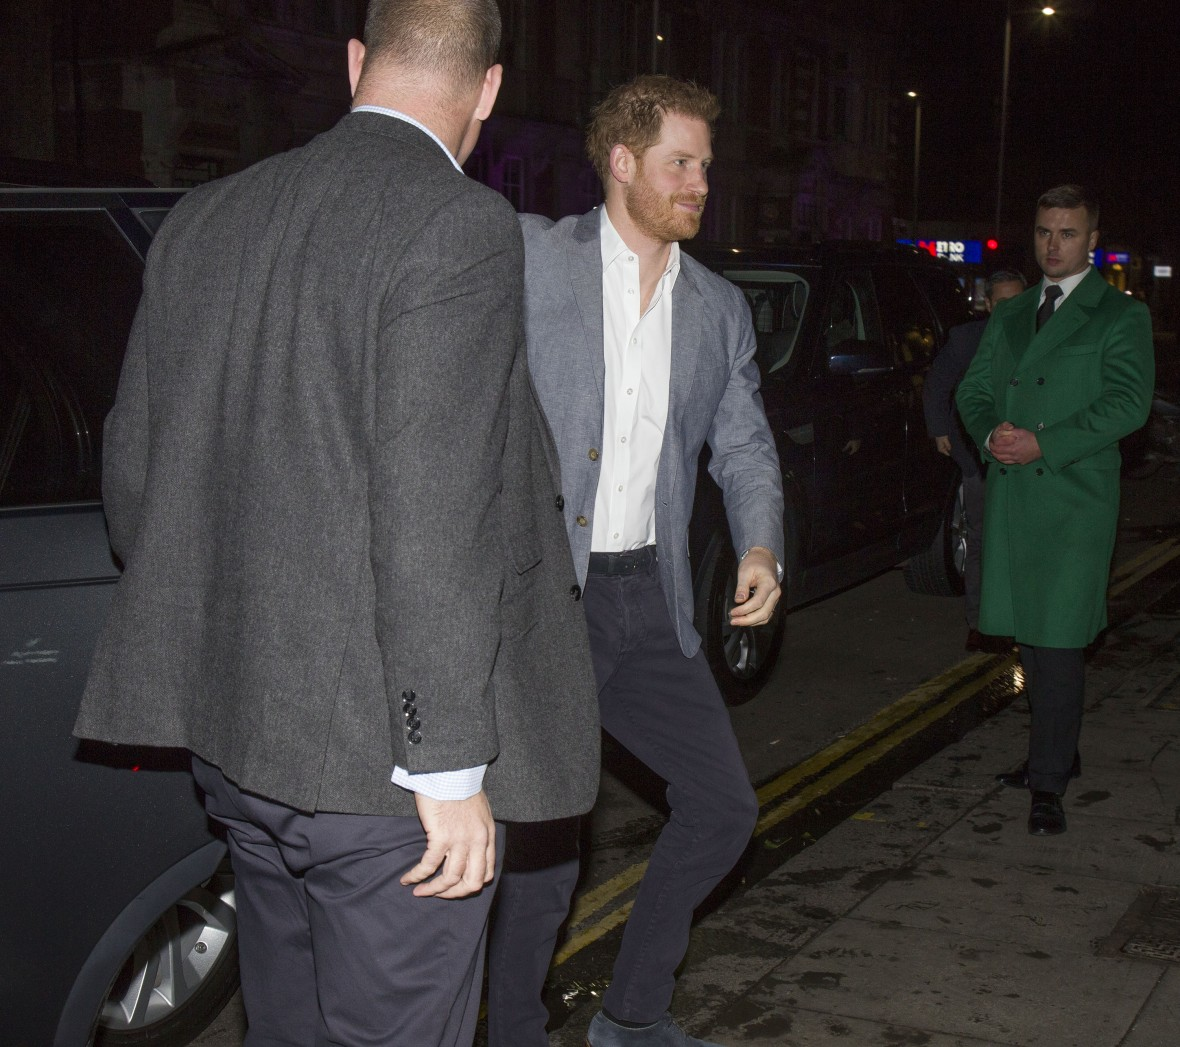 Prince Harry Gives First Speech Since Split From Royal Family